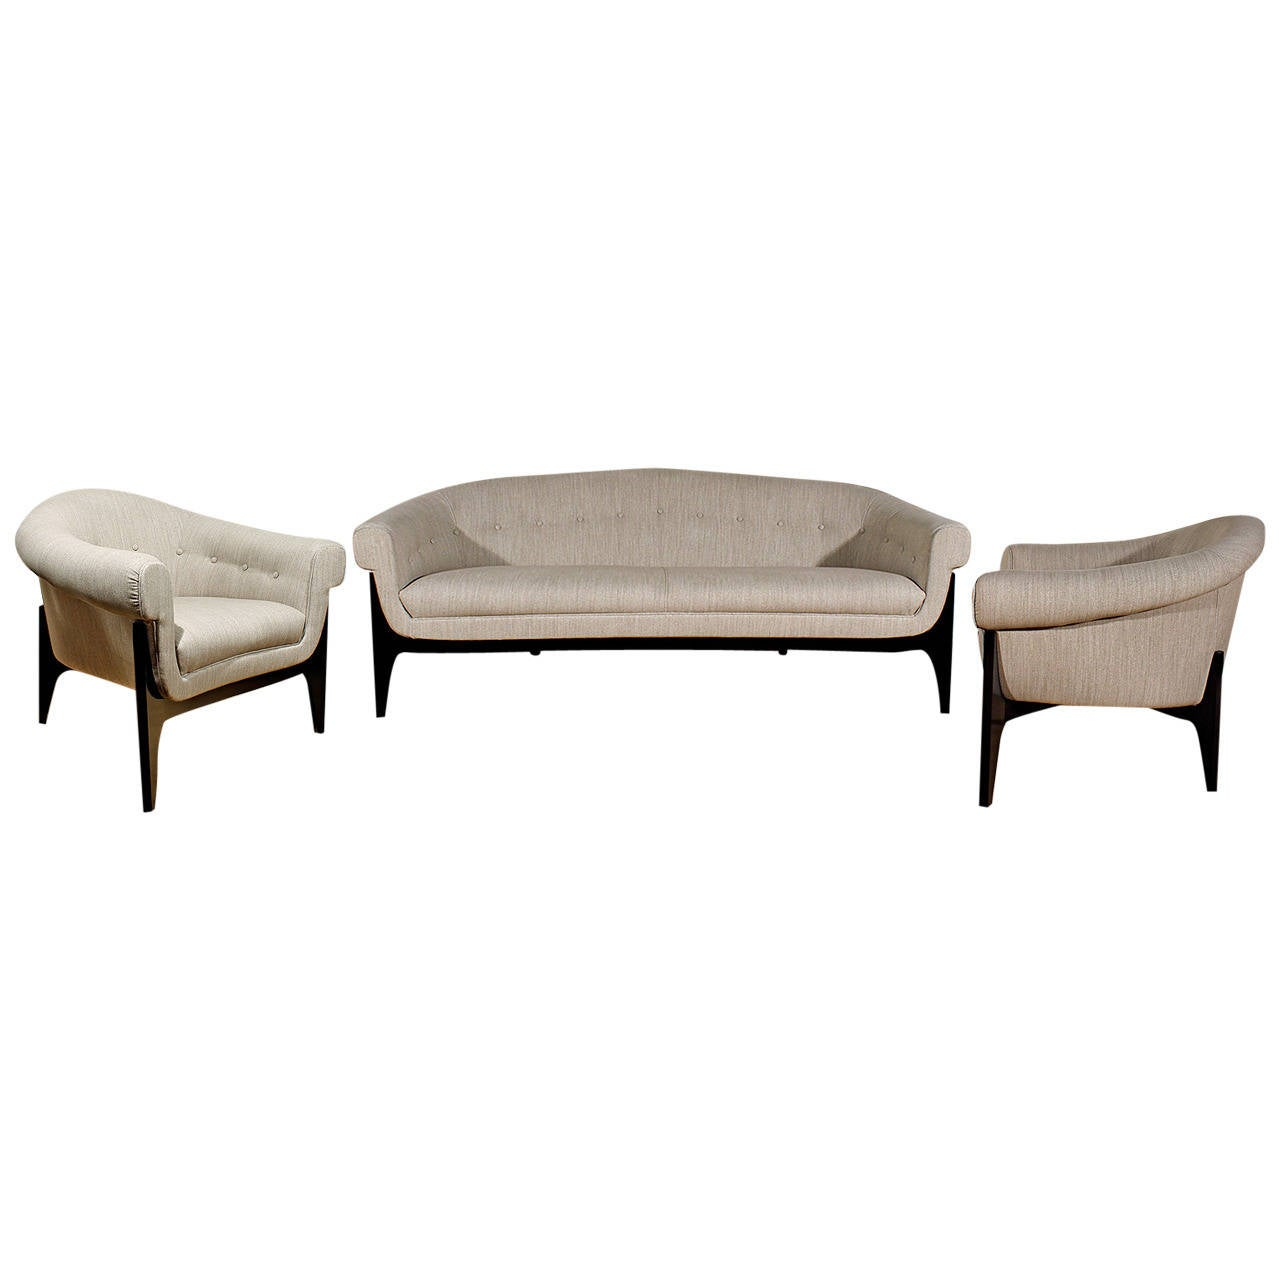 Italian living room set from the 1950s at 1stdibs for Italian living room furniture